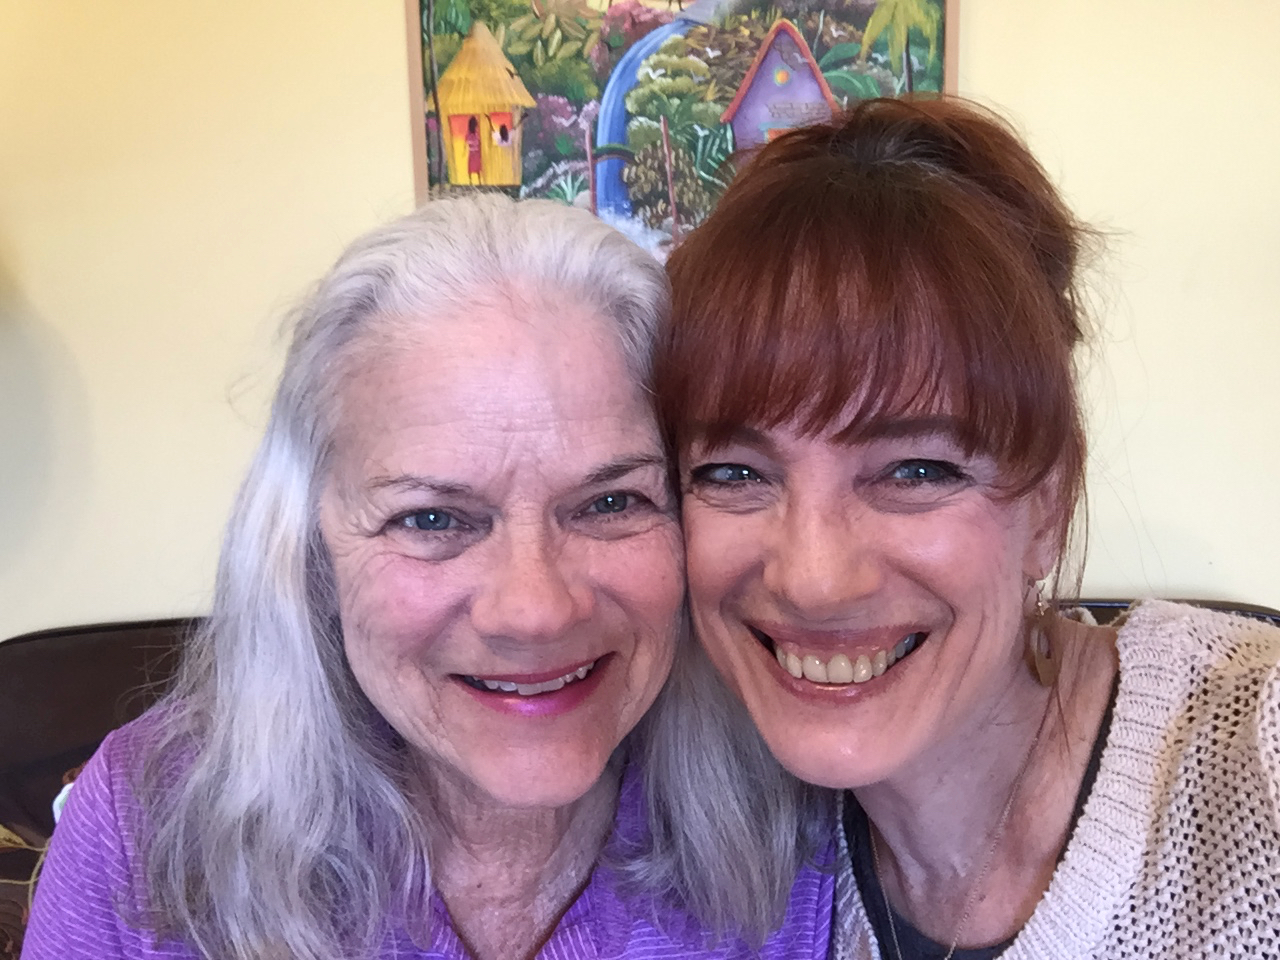 My client Nancy was seeking more independence and confidence - and found it! She is now out exploring the world - and embracing it all with excitement and enthusiasm. Love you, Nancy!